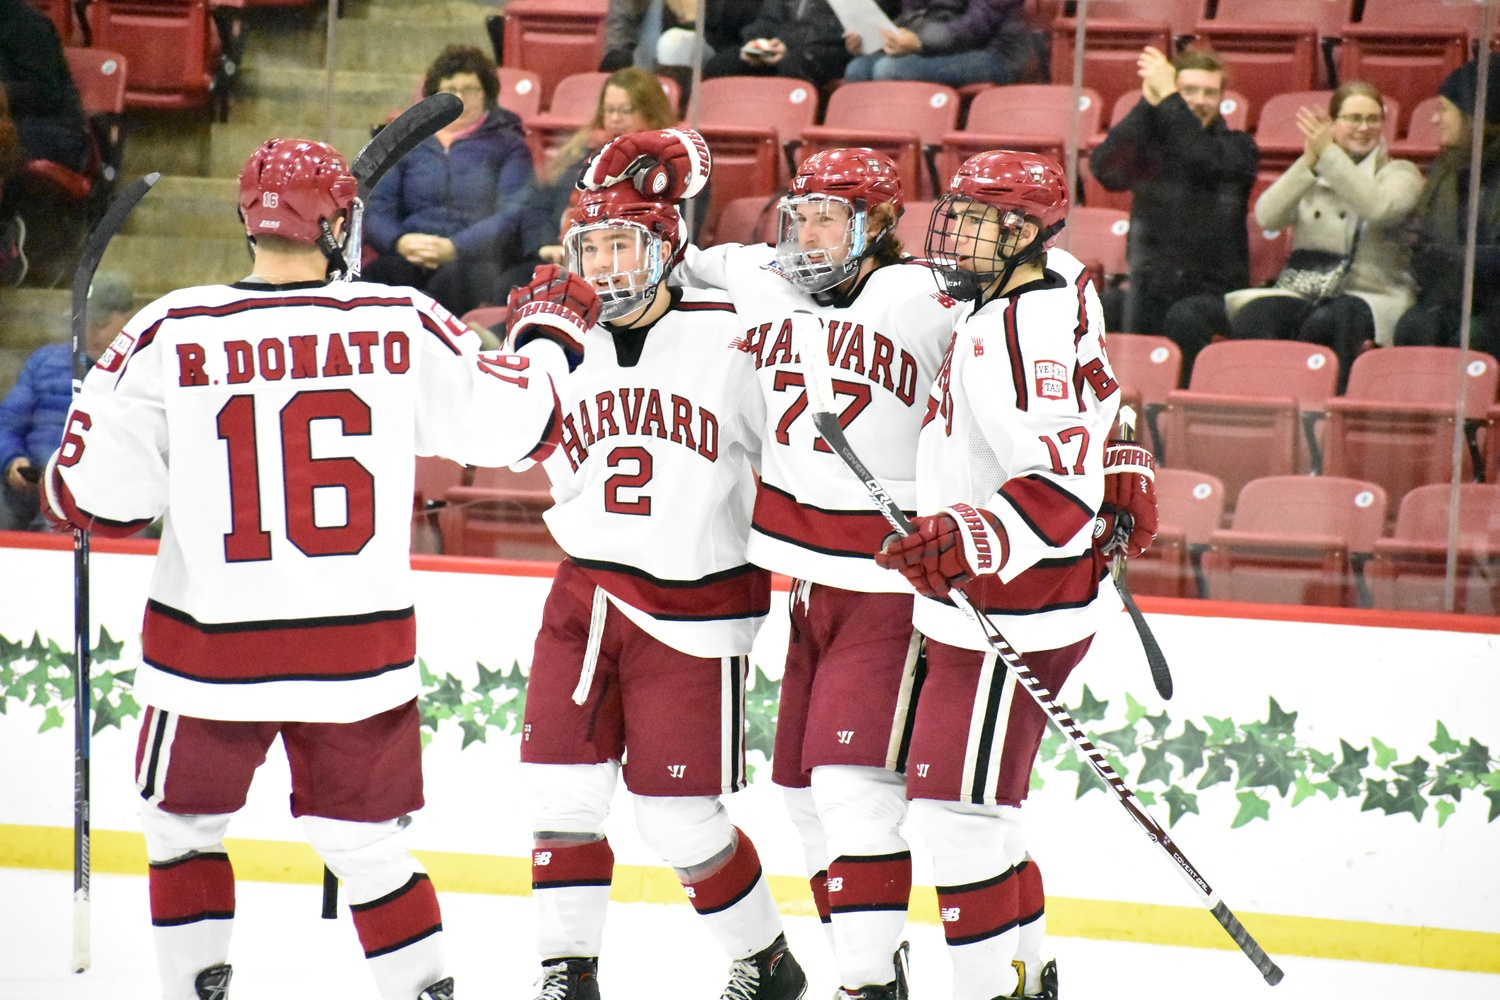 Harvard's offense roared back to life after scoring just one goal against Dartmouth in Game 1—the Crimson put the puck in the Big Green net seven times.